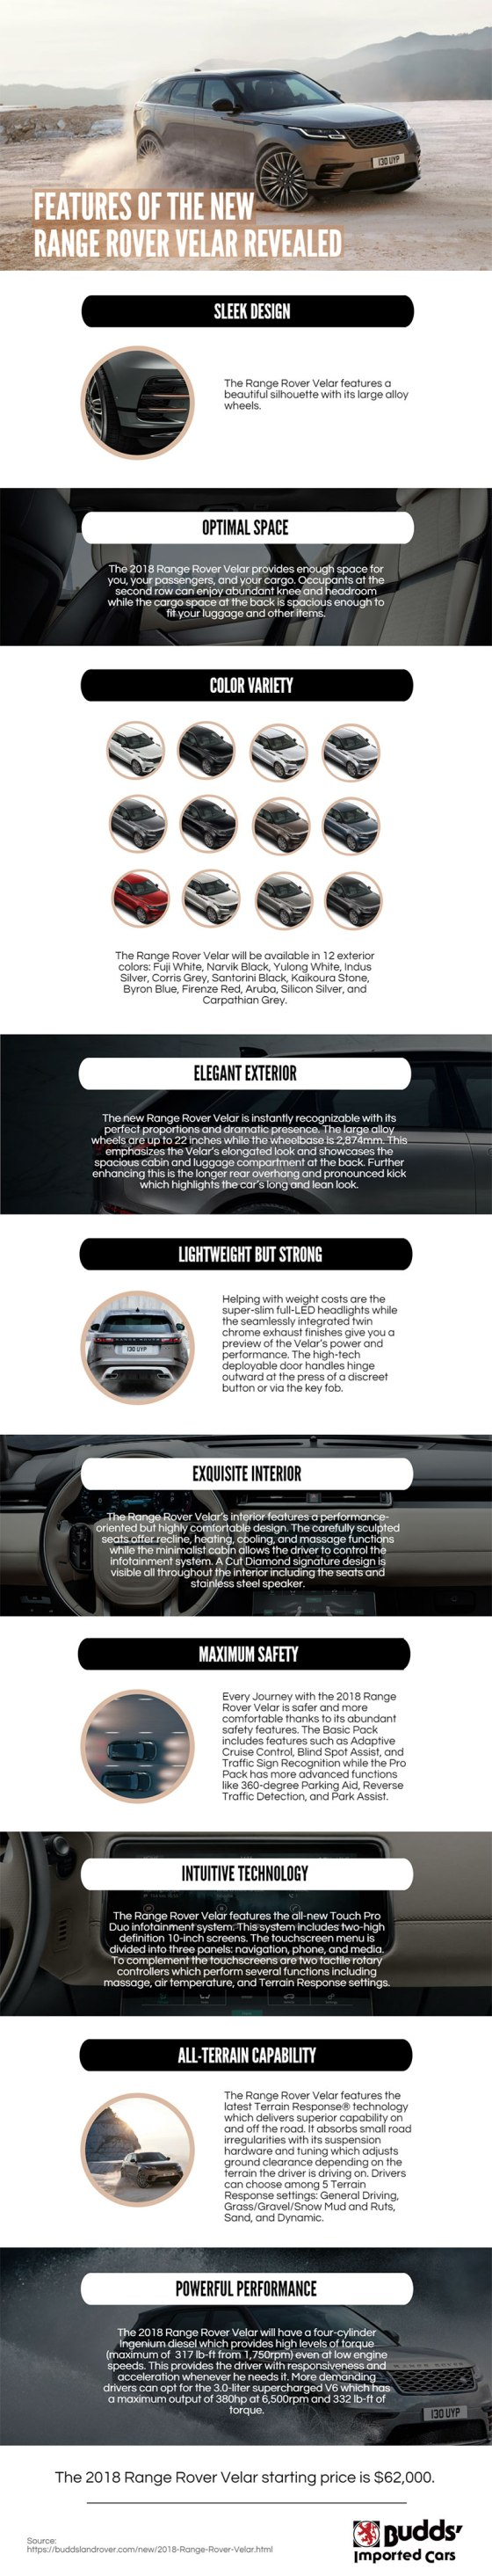 Infographic : Introducing the New Range Rover Velar